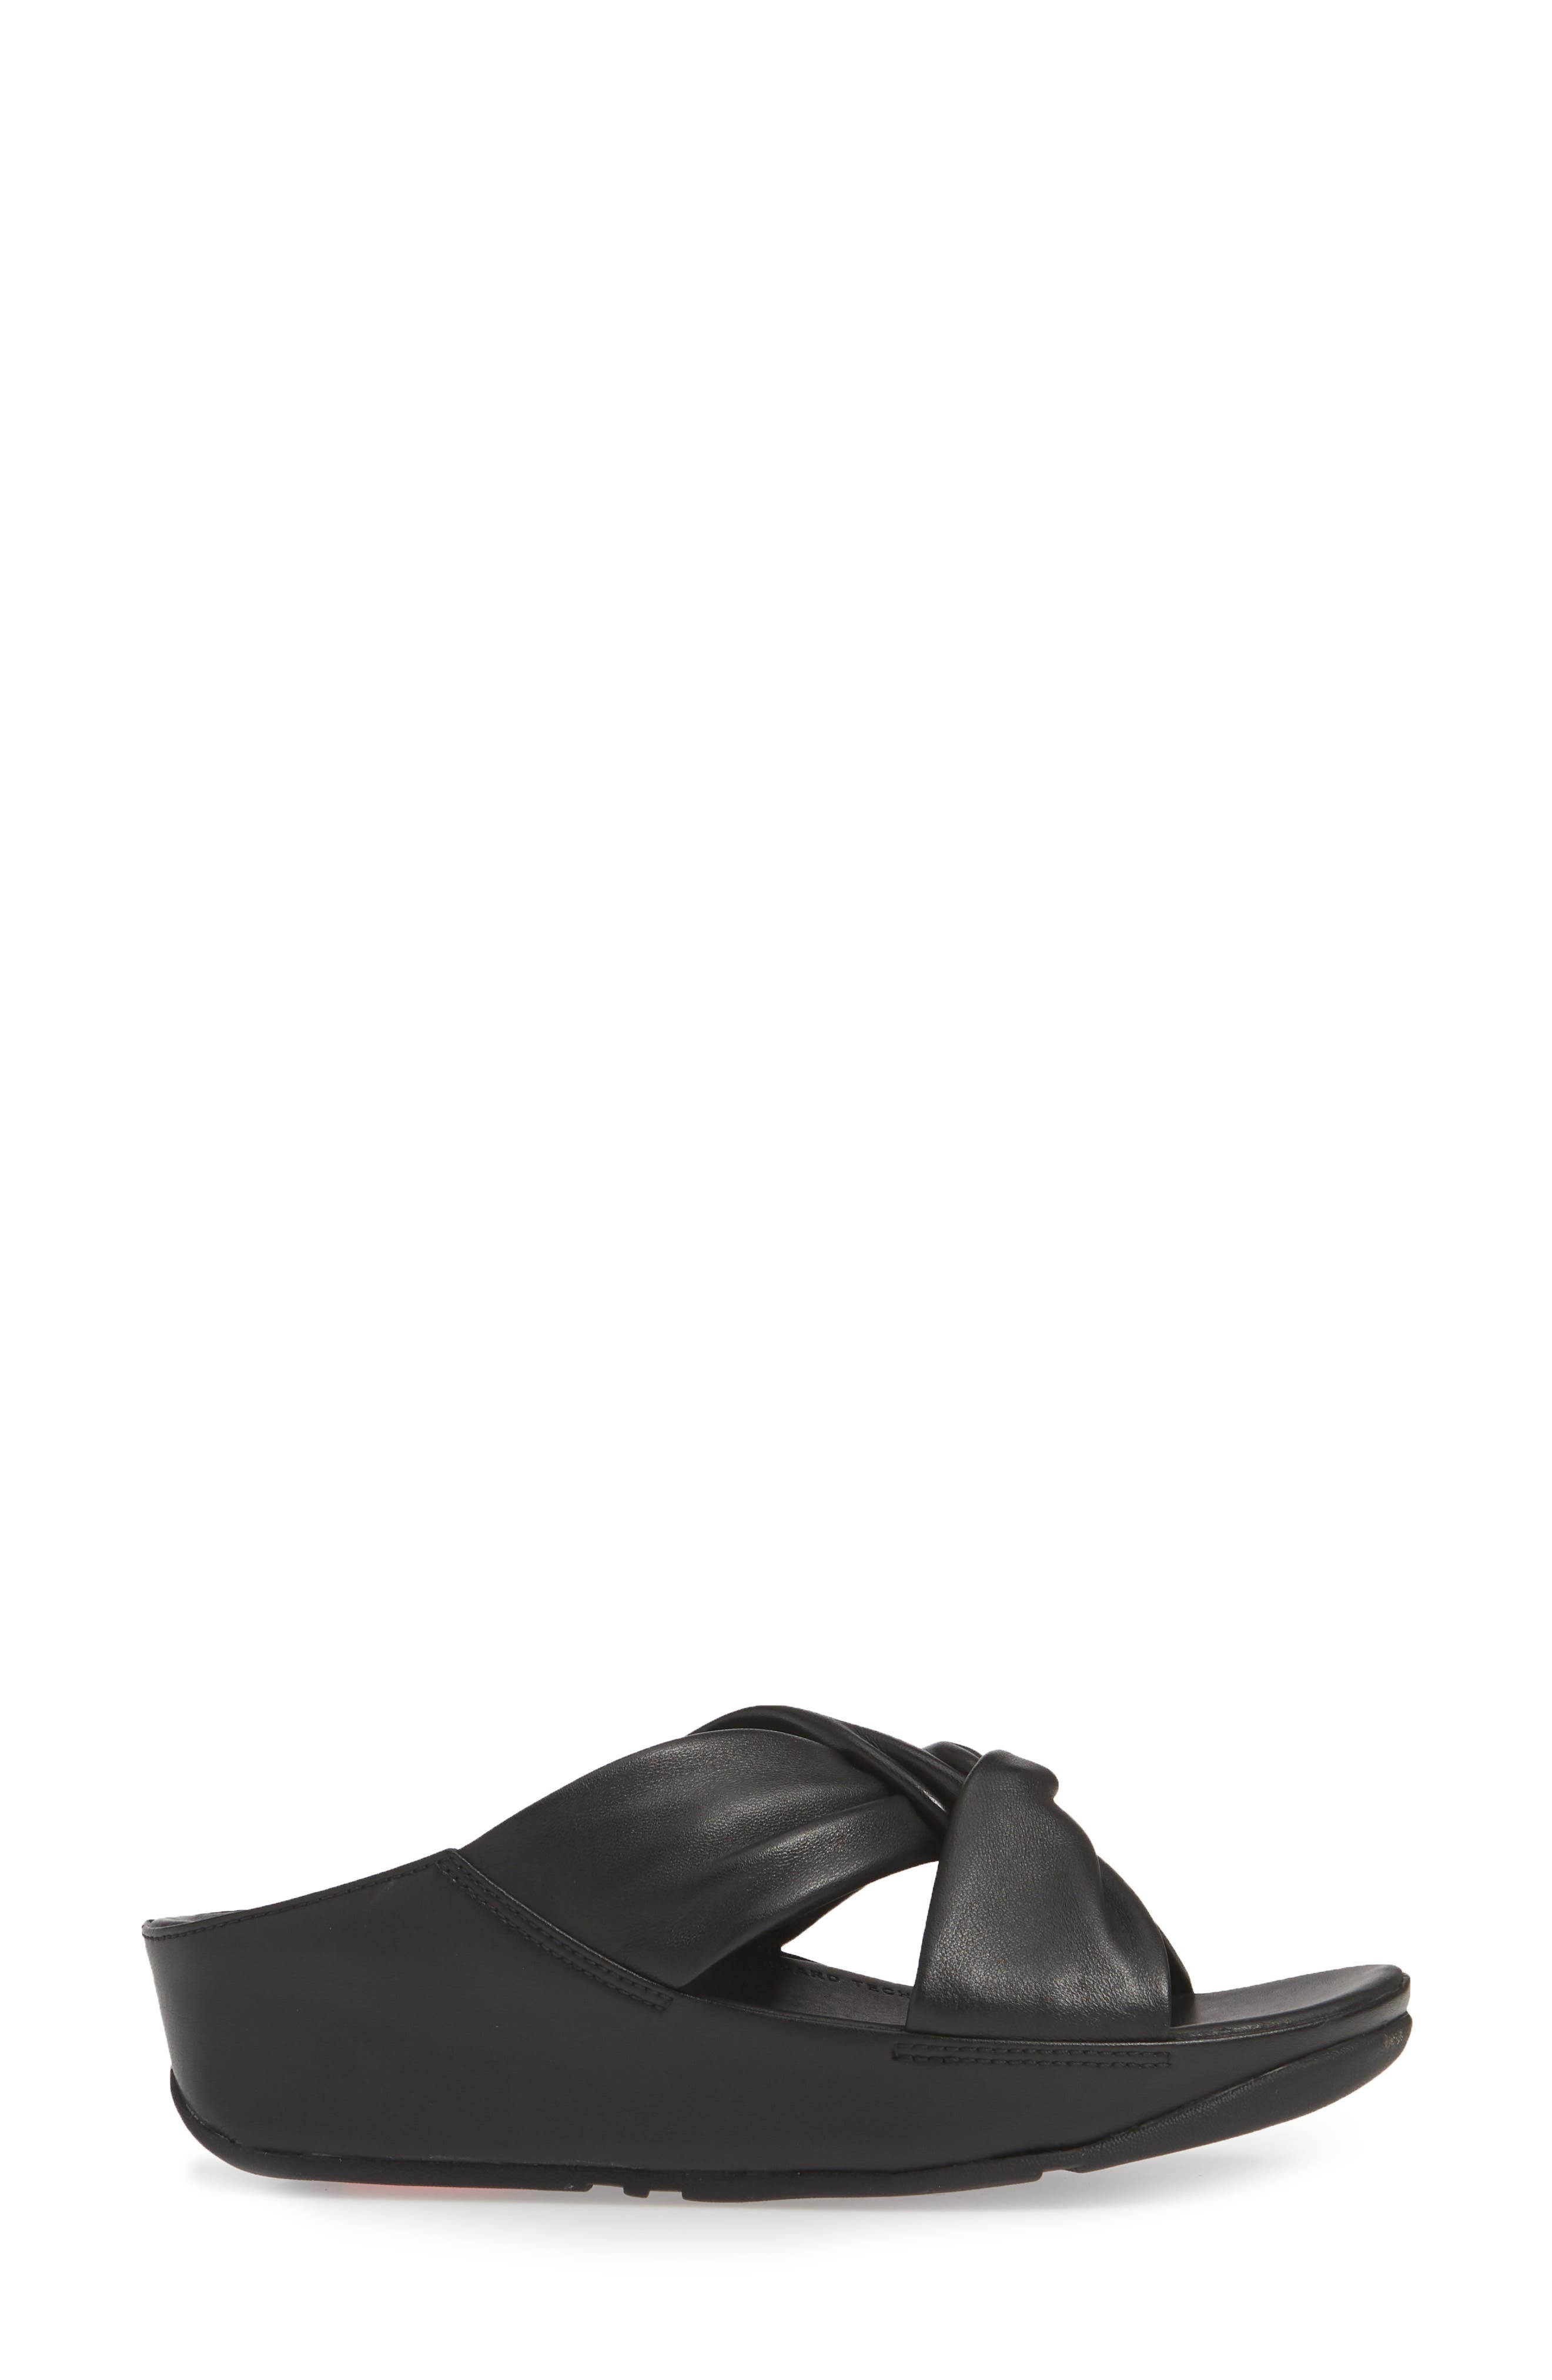 FITFLOP, Twiss Slide Sandal, Alternate thumbnail 3, color, BLACK LEATHER